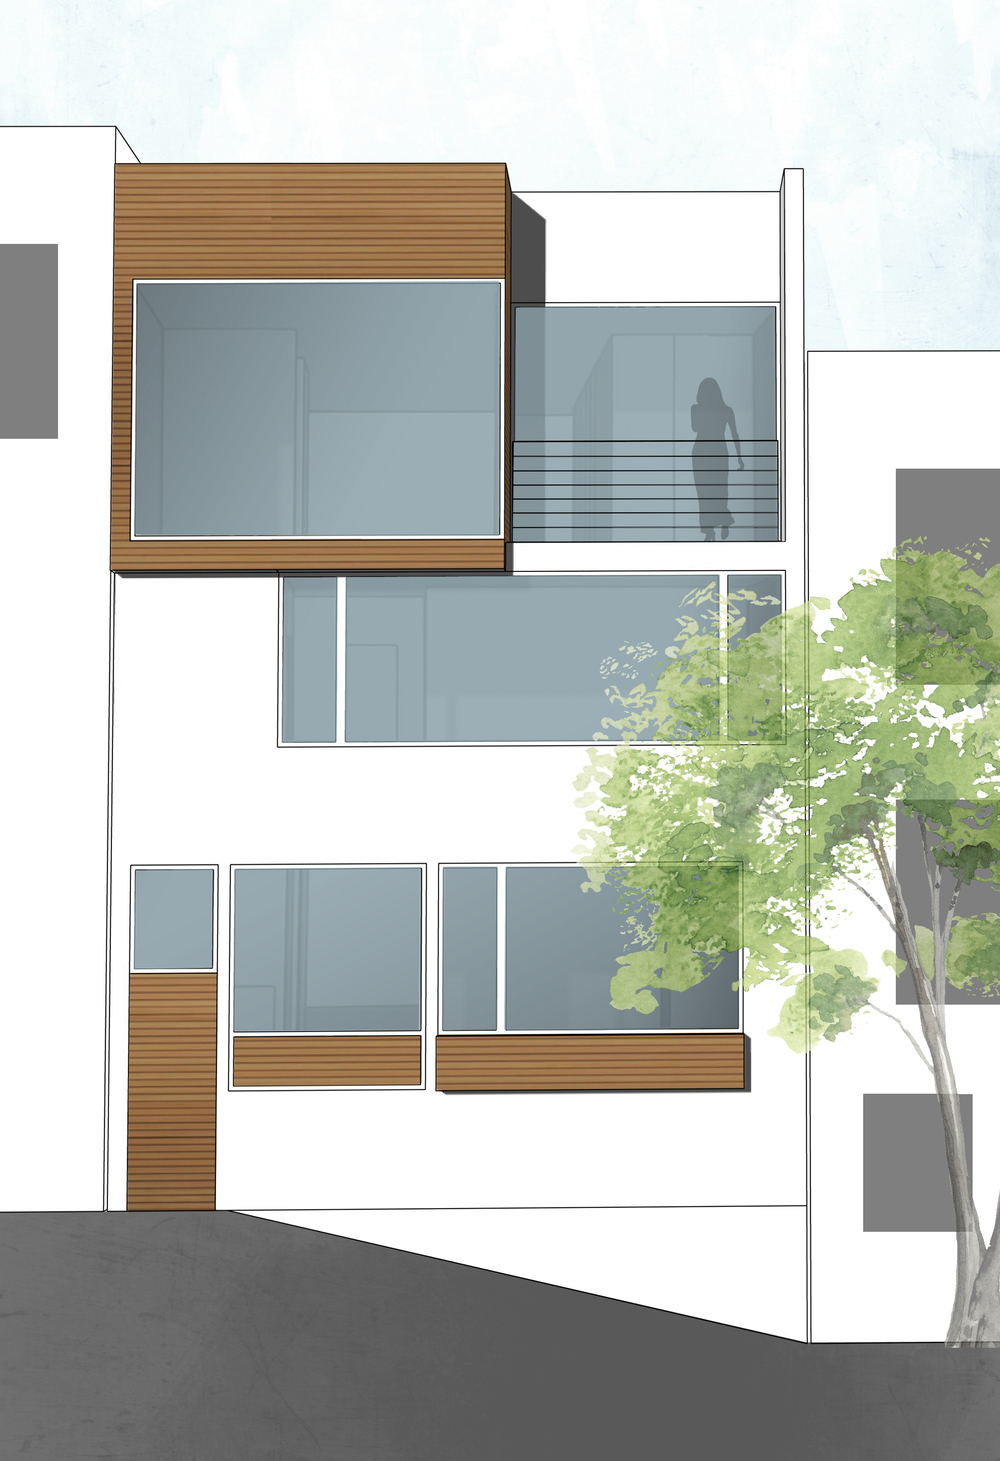 2014_1020_Alley Elevation Drawing.jpg